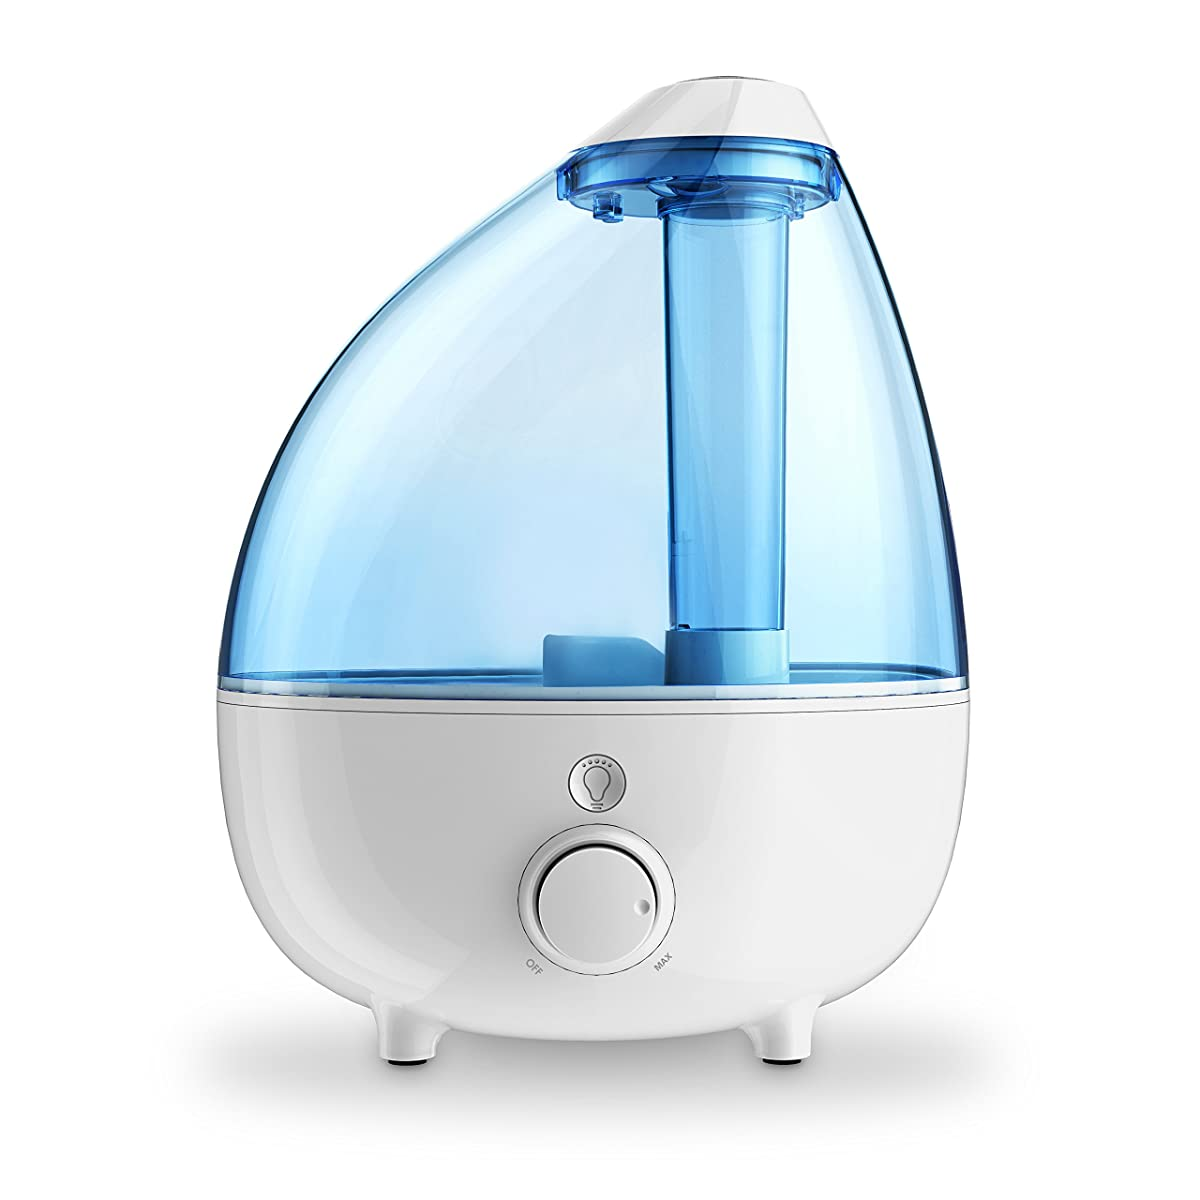 Ultrasonic Cool Mist Humidifier XL – 1-Gallon Water Tank with Variable Mist Control, Automatic Shut-Off, and Soft Night Light Options